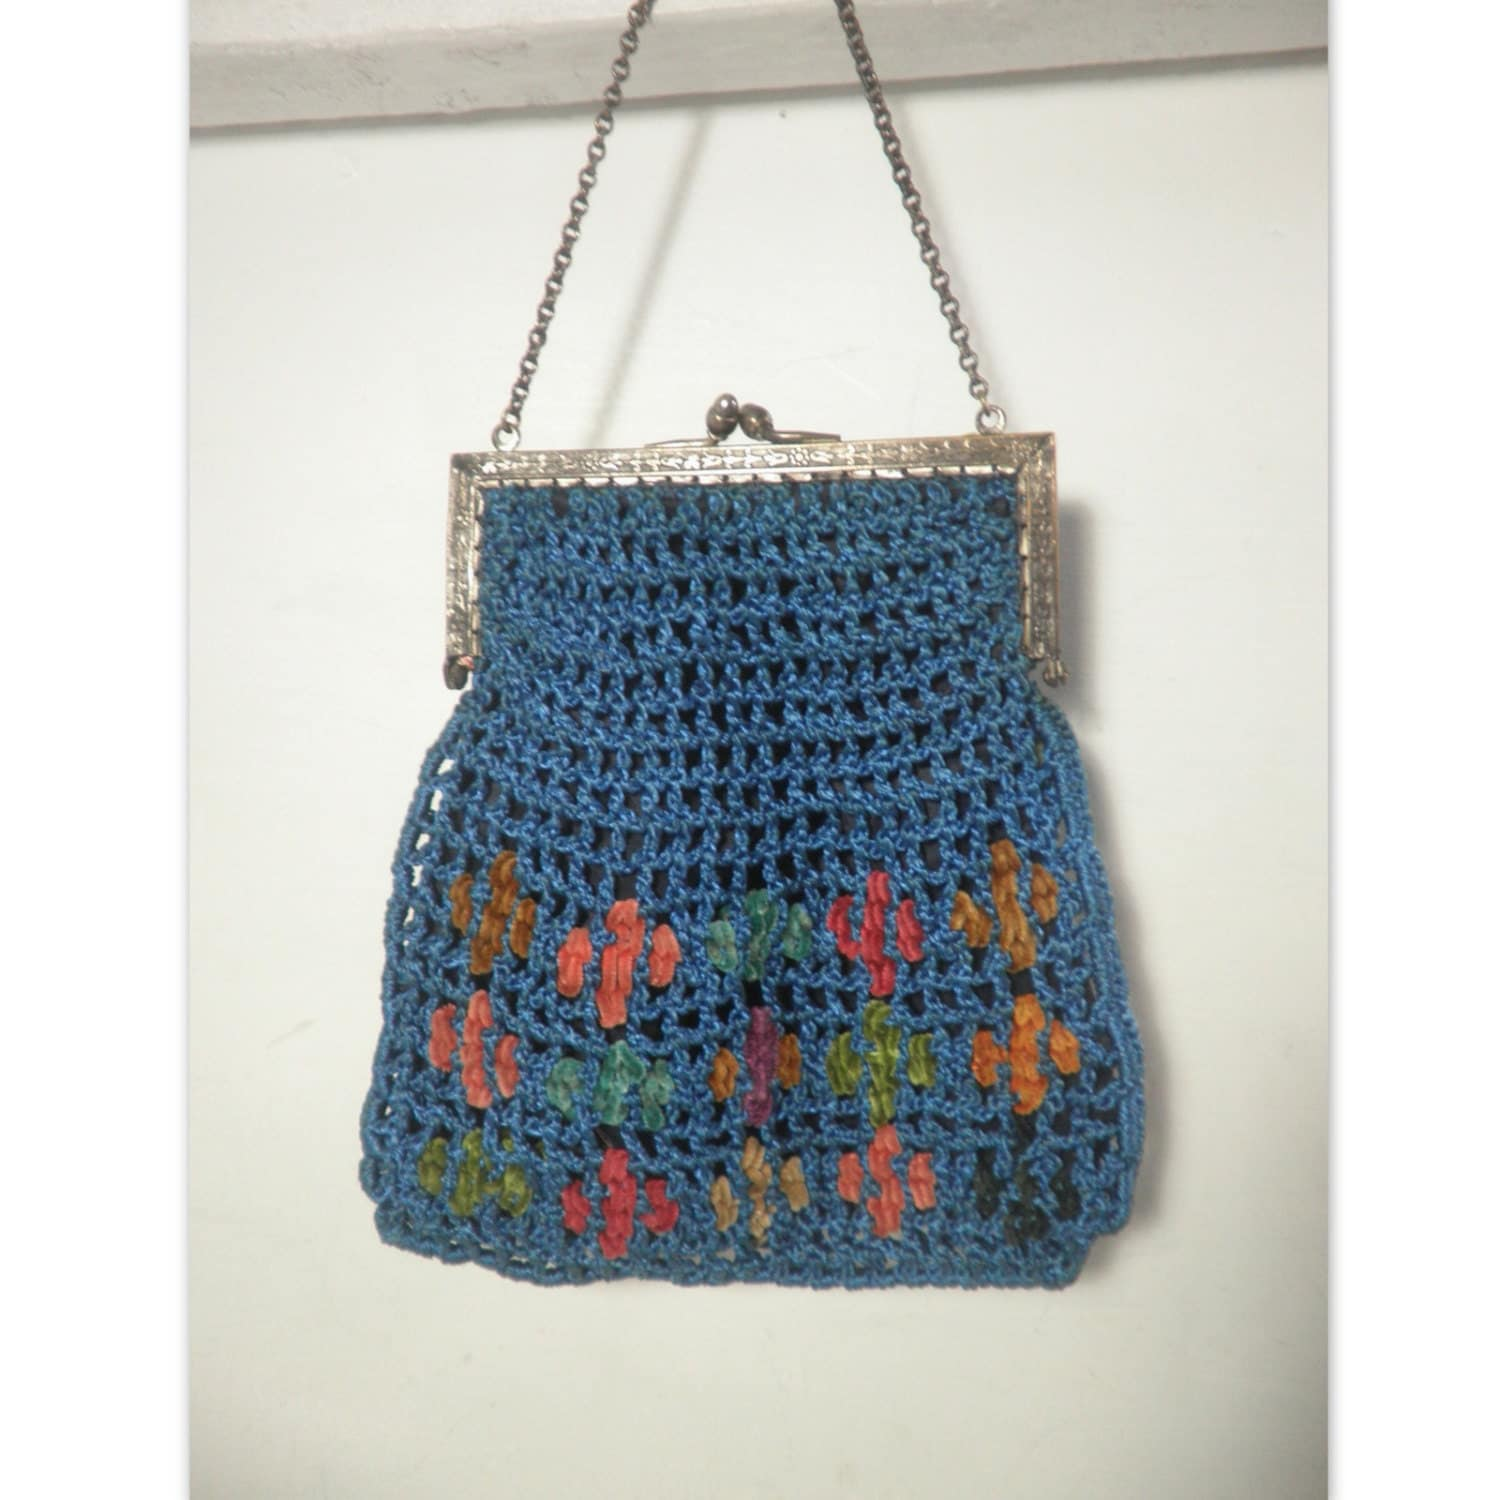 Vintage Crochet / Knit Handbag Purse from the 1920s-30s, Light Blue...